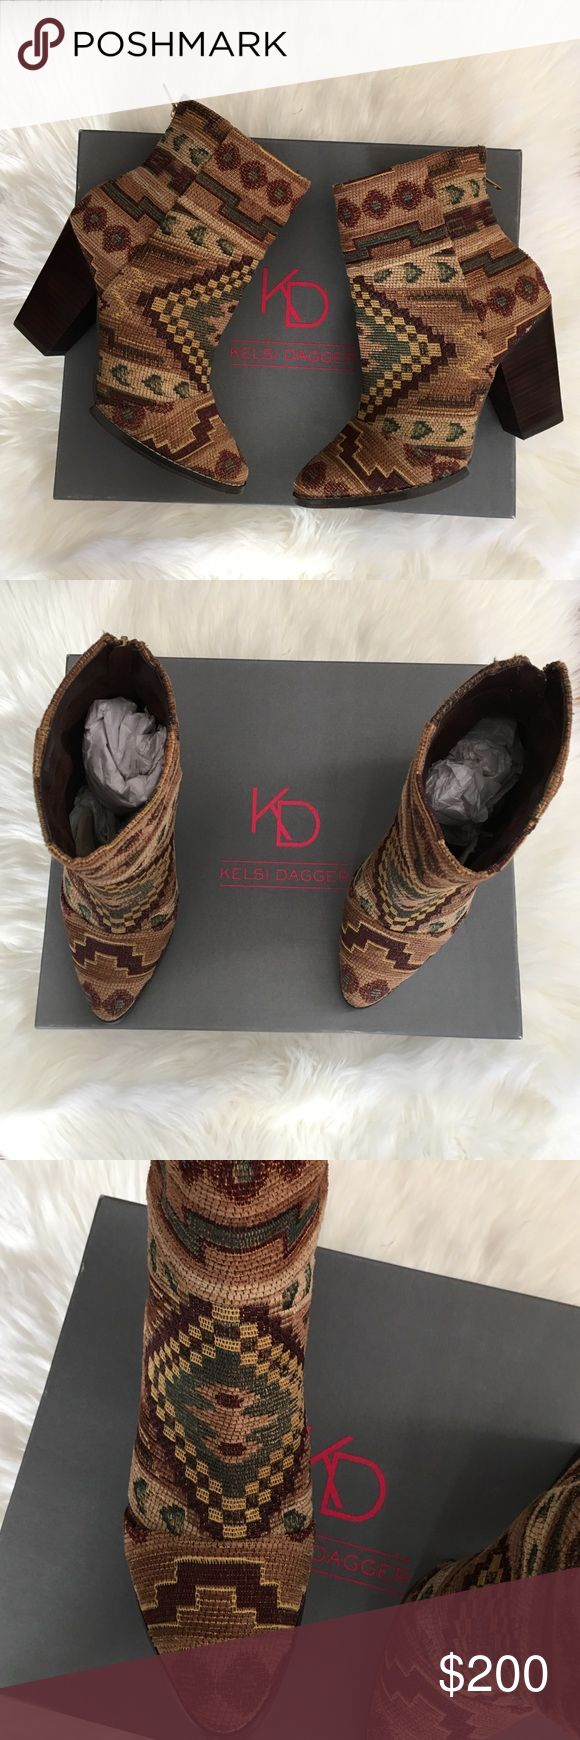 Kelsi Dagger Zidane Tapestry Boots These boots are new in box and hard to find. They are a tapestry design. Very boho. Perfect for a bohemian style. Great with jeans or a little black dress. Offers welcome! Kelsi Dagger Shoes Ankle Boots & Booties